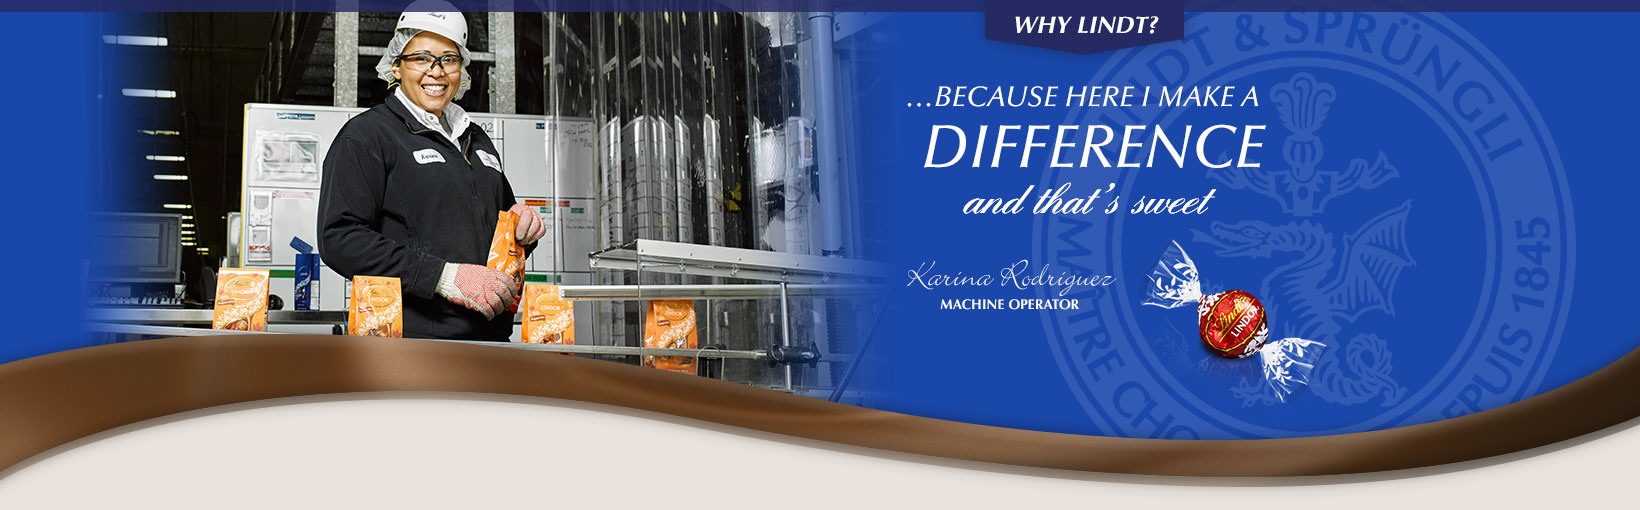 Why Lindt? …Because here I make a difference and that's sweet. Karina Rodriguez, Machine Operator